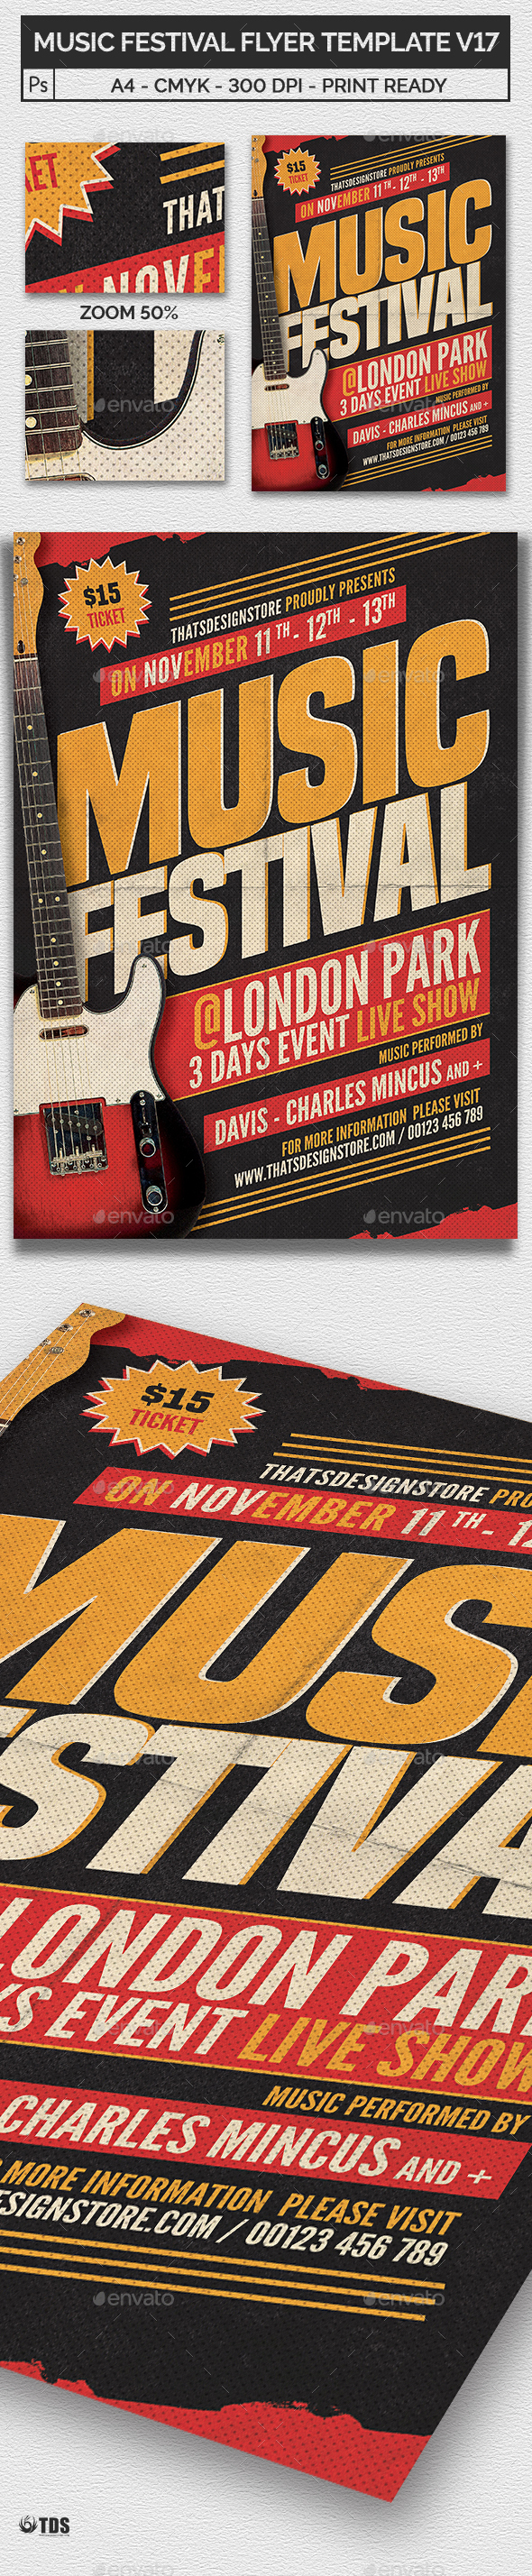 Music Festival Flyer Template V17 - Concerts Events